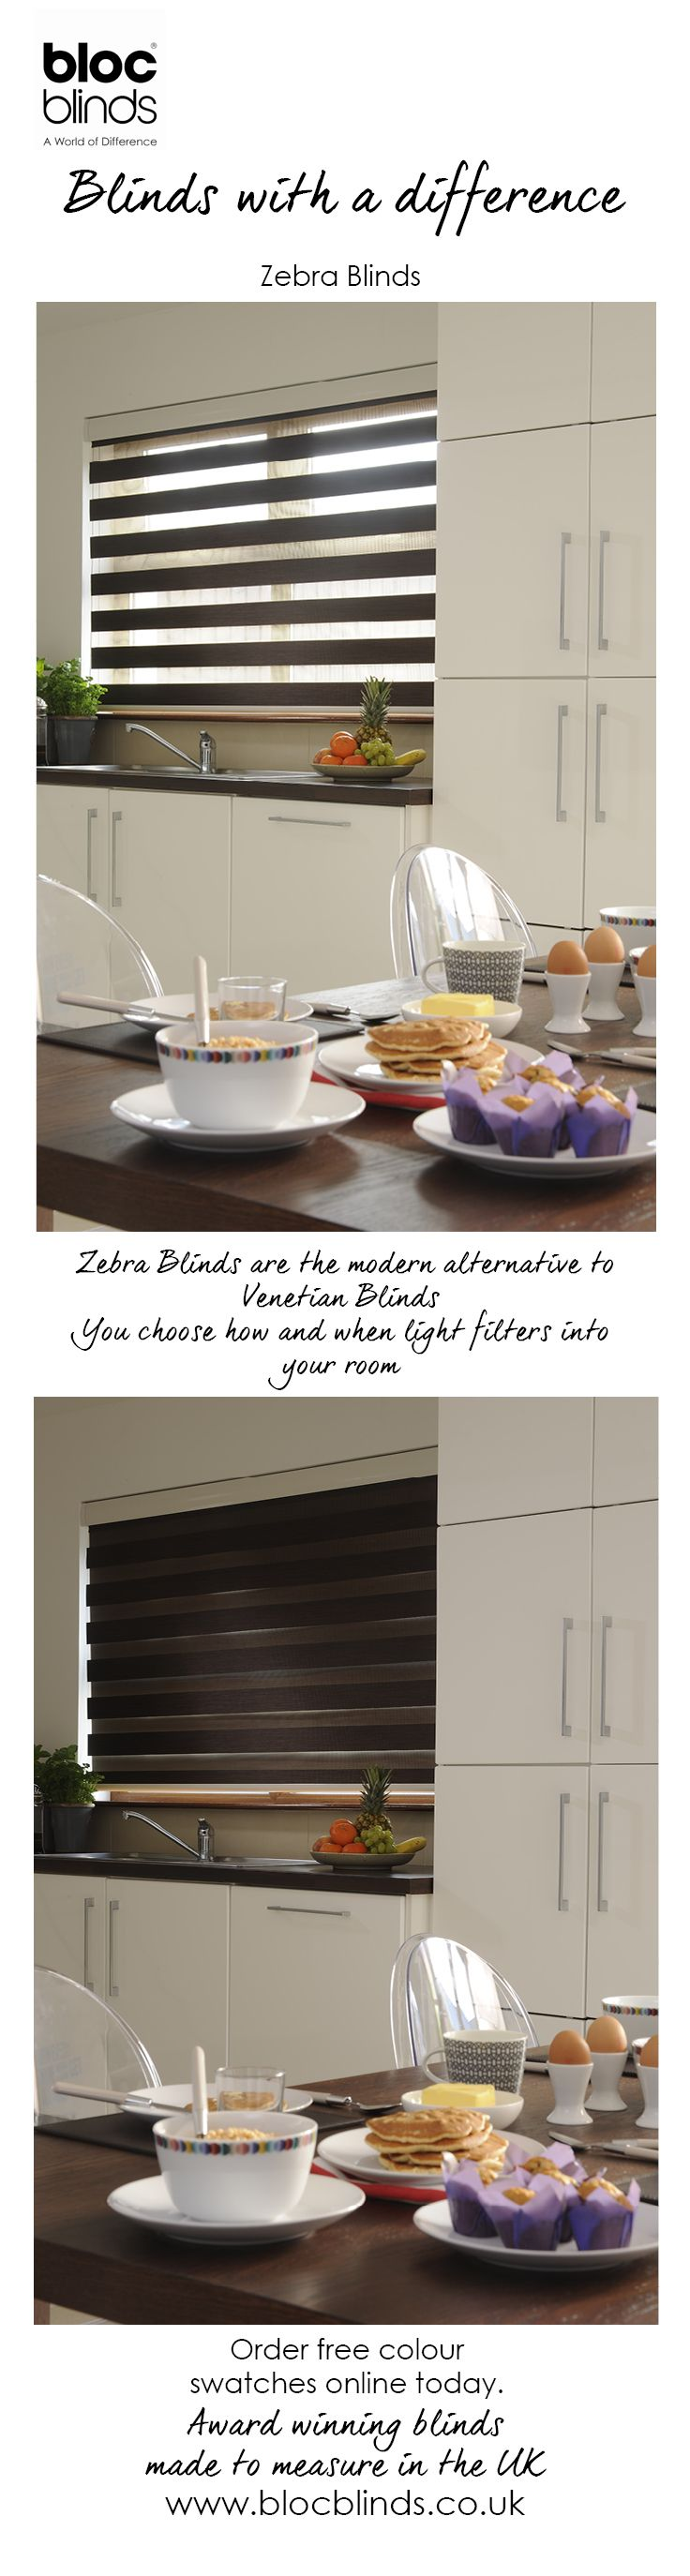 Day and Night Blinds, Vision Blinds or Zebra Blinds...they're  all the same. You get to control how and when daylight enters the room.  Bloc Blinds Zebra Blinds come in a wide range of colours. Order free swatches online.